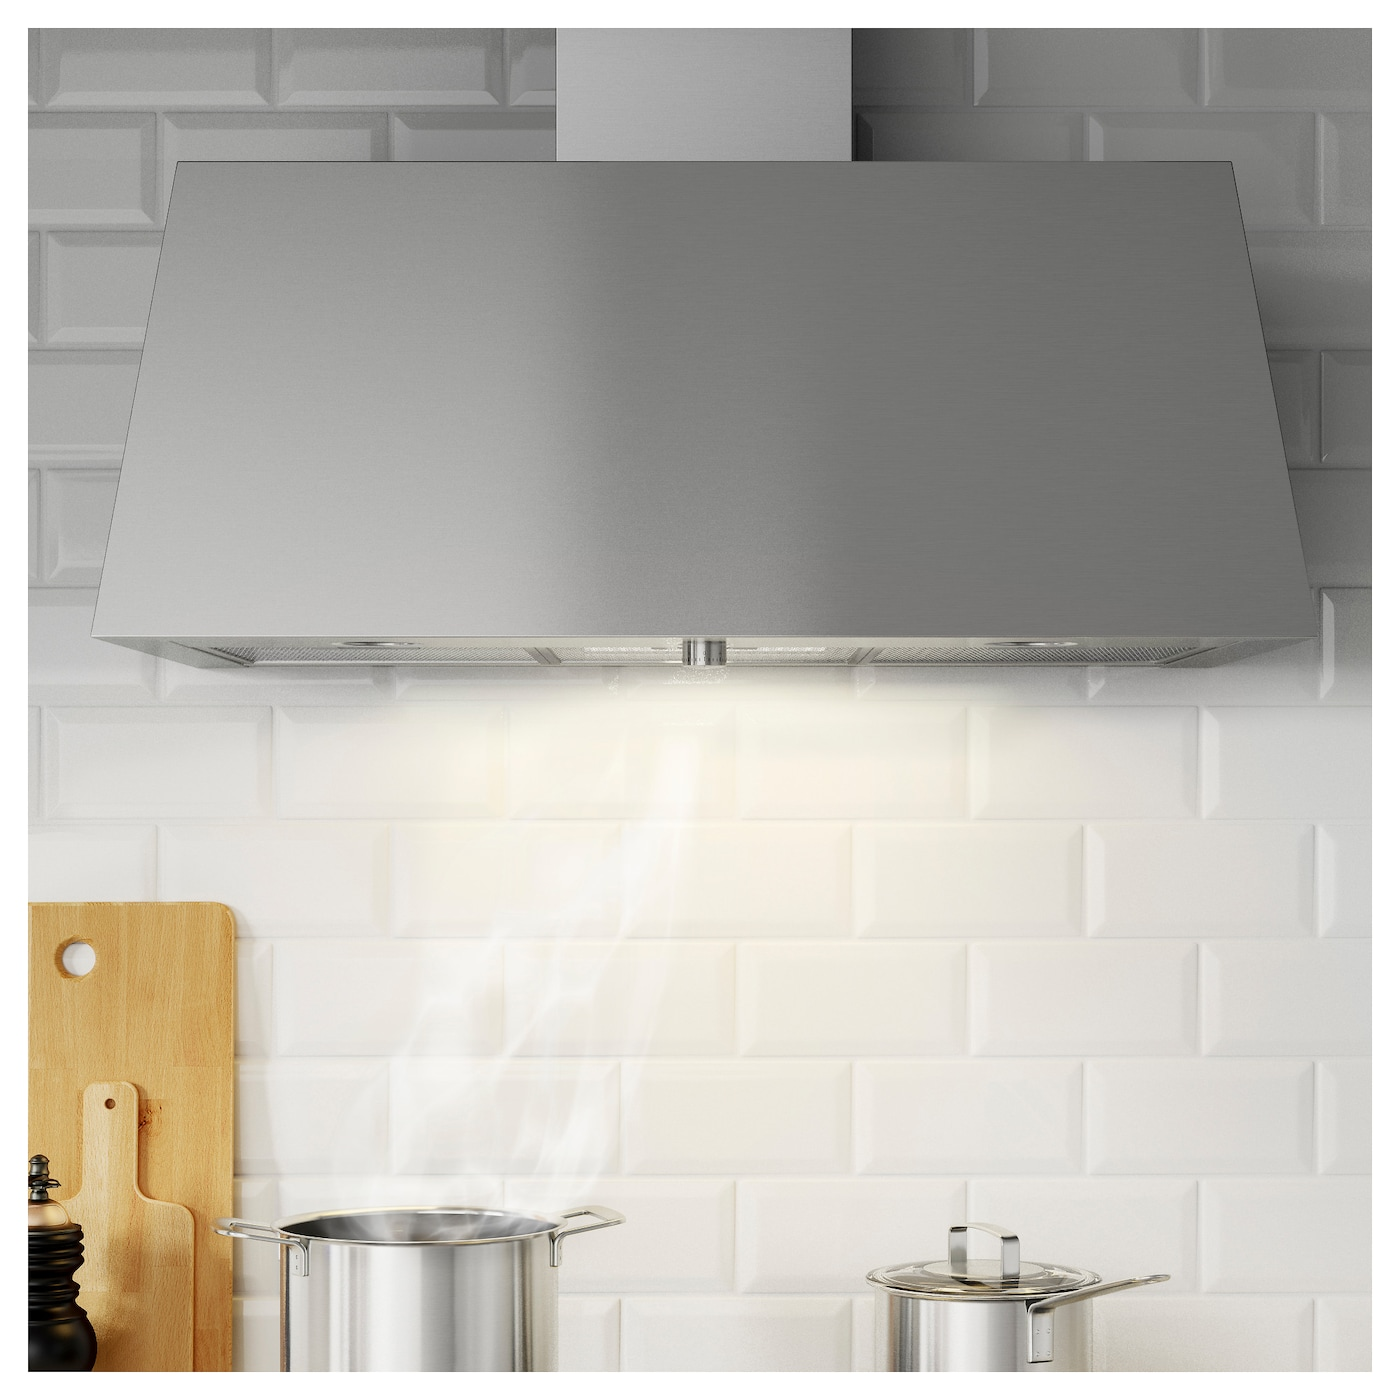 IKEA GRILJERA wall mounted extractor hood